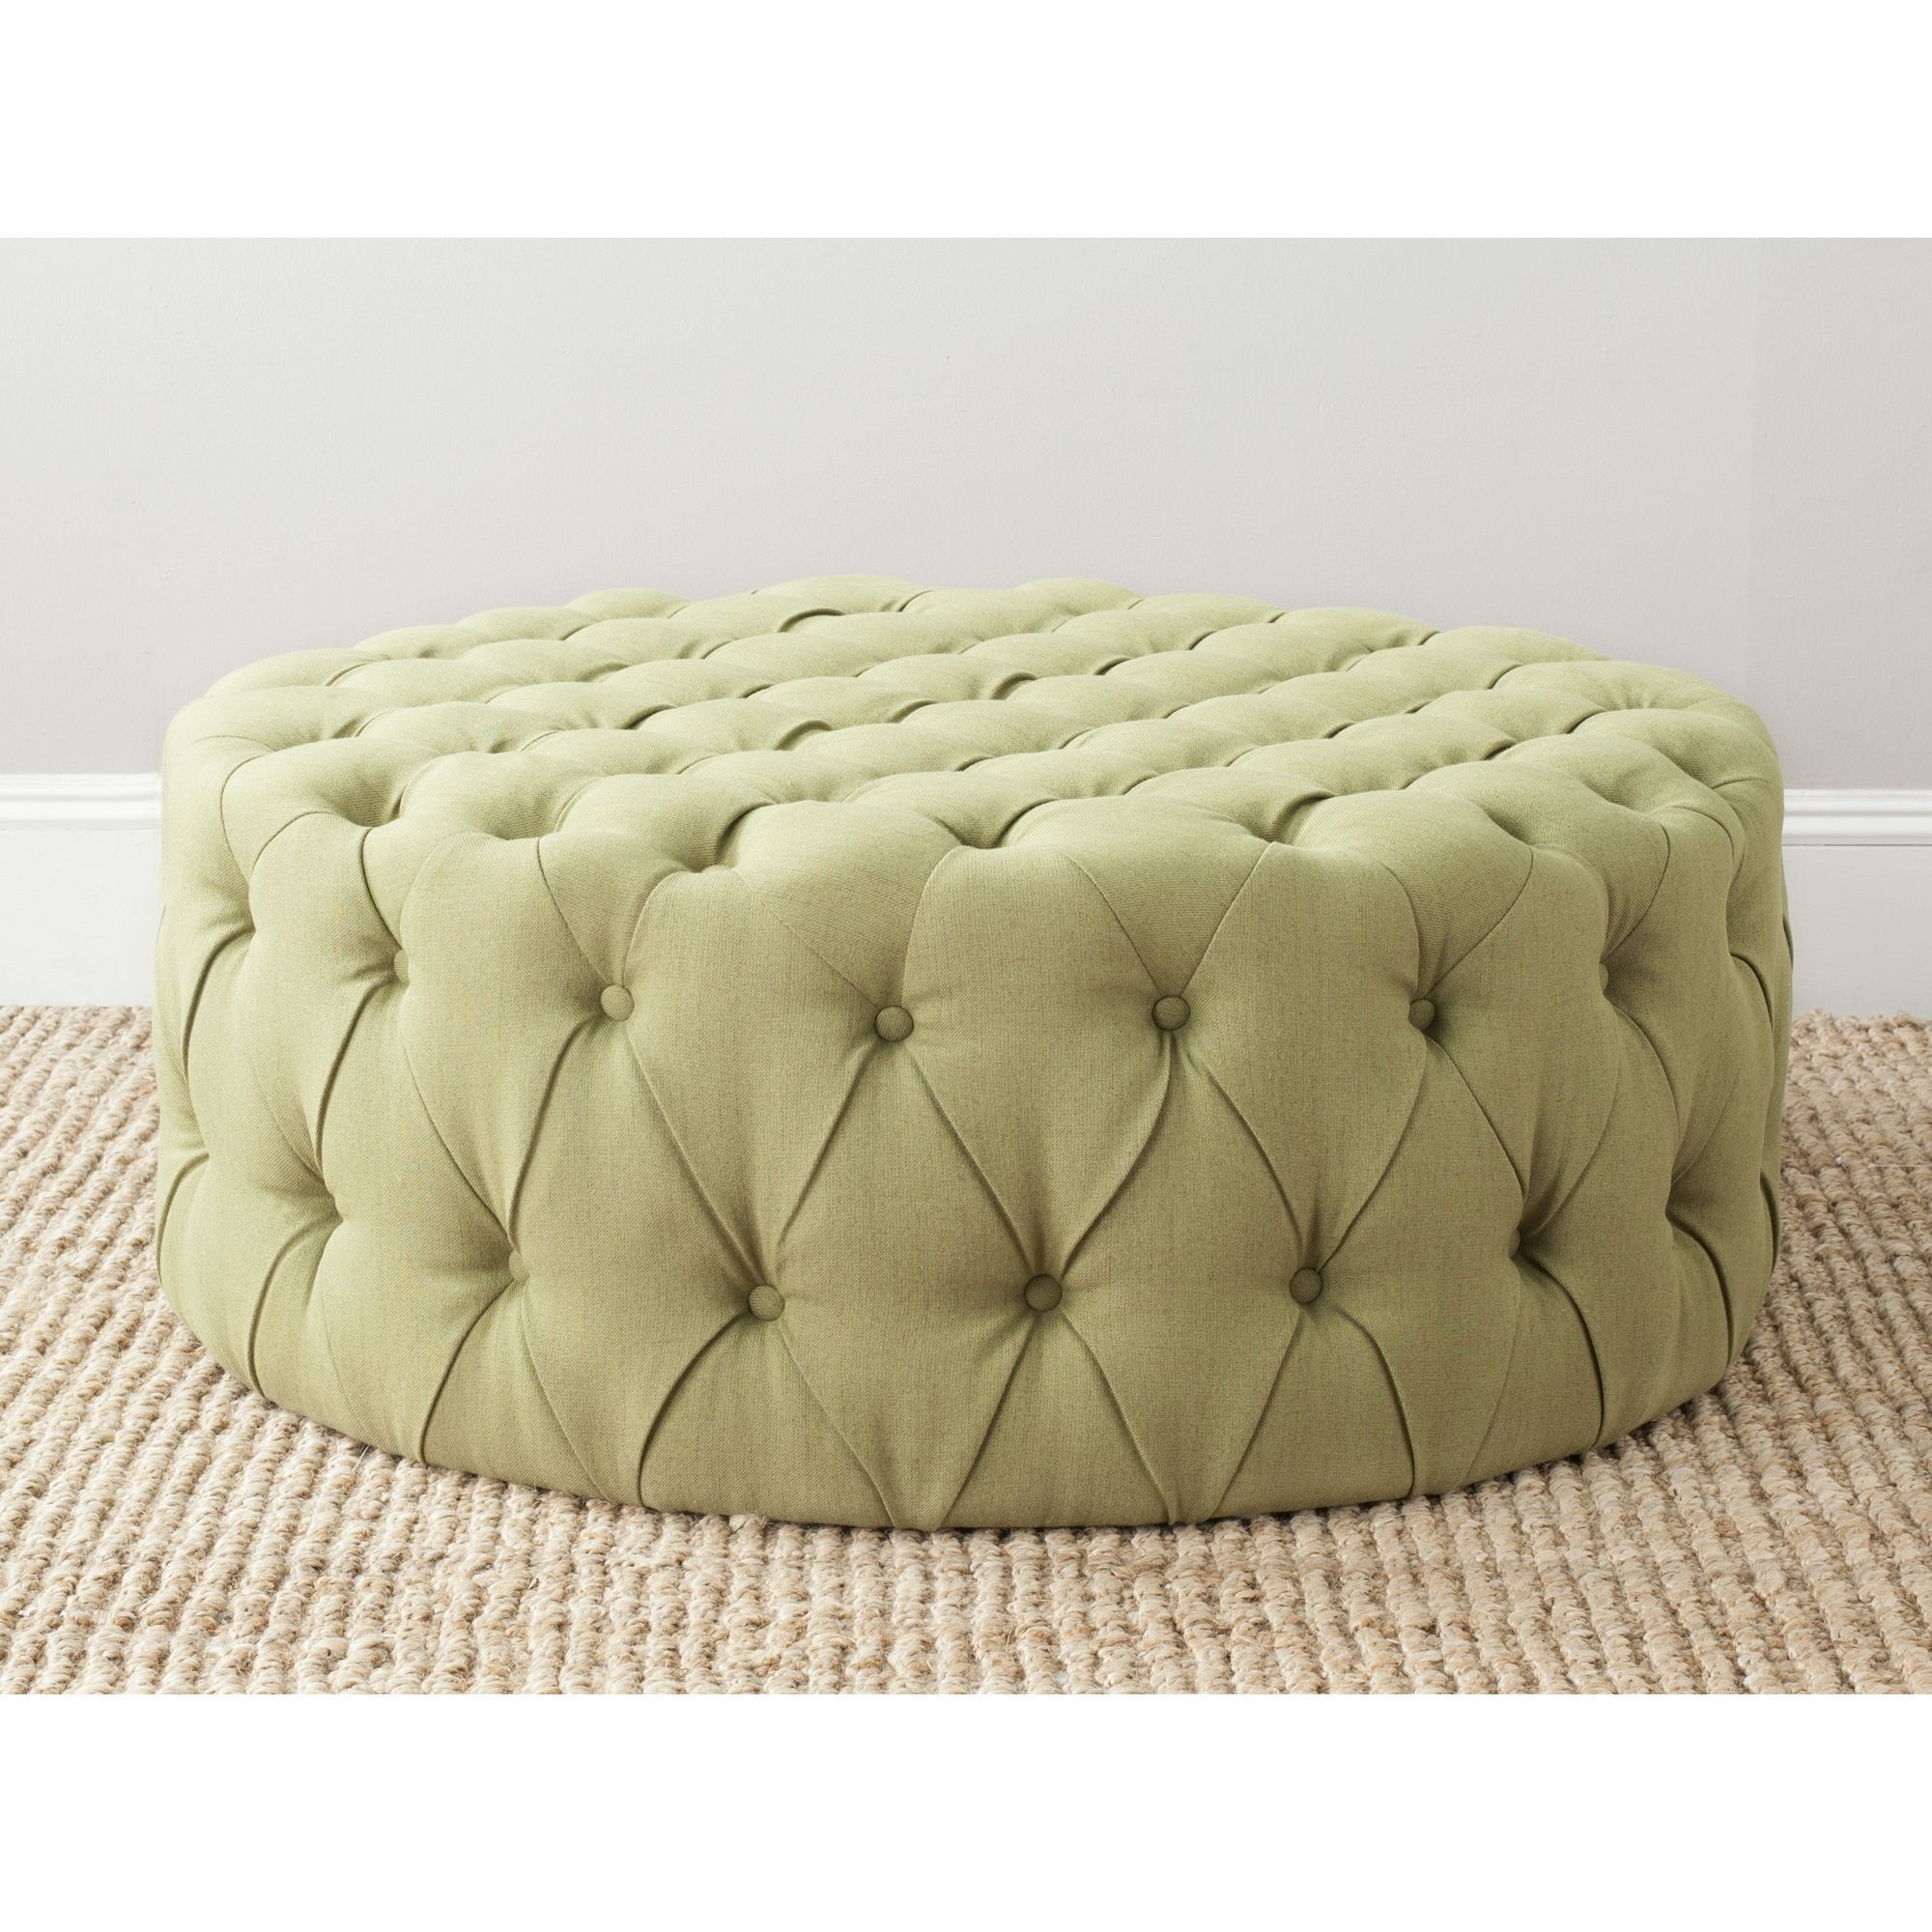 Enjoy The Bevelled Gem Diamond Pleated Look Of Extreme Tufting With This Safavieh Charlene Light Green Ottoman With A 39 Green Ottoman Ottoman Tufted Ottoman